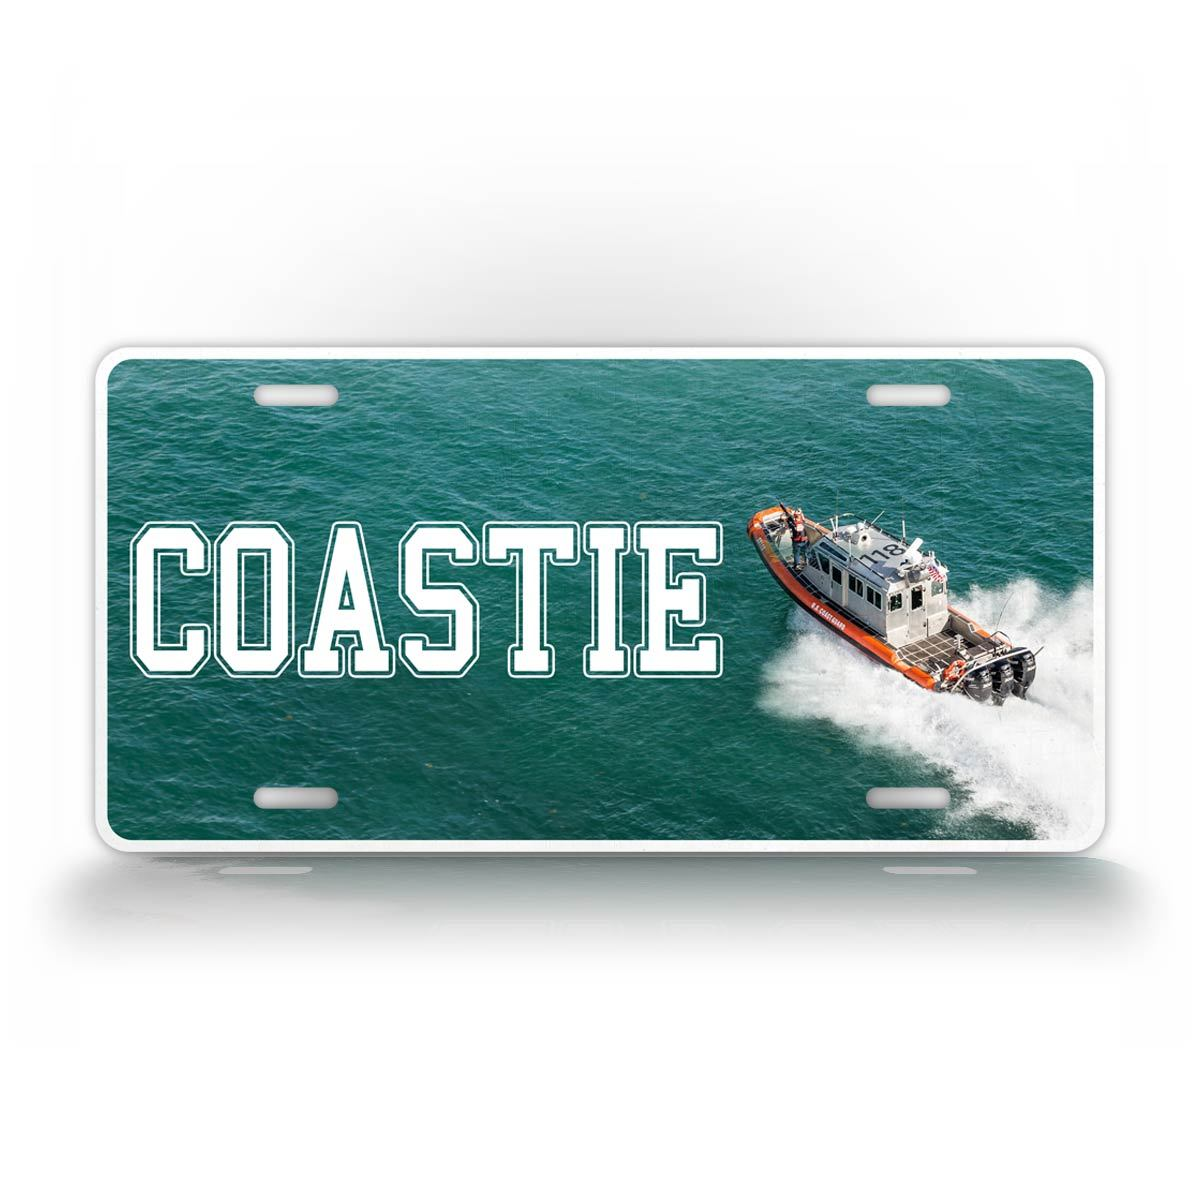 Coast Guard Veteran License Plate Coastie Boat USCG License Plate